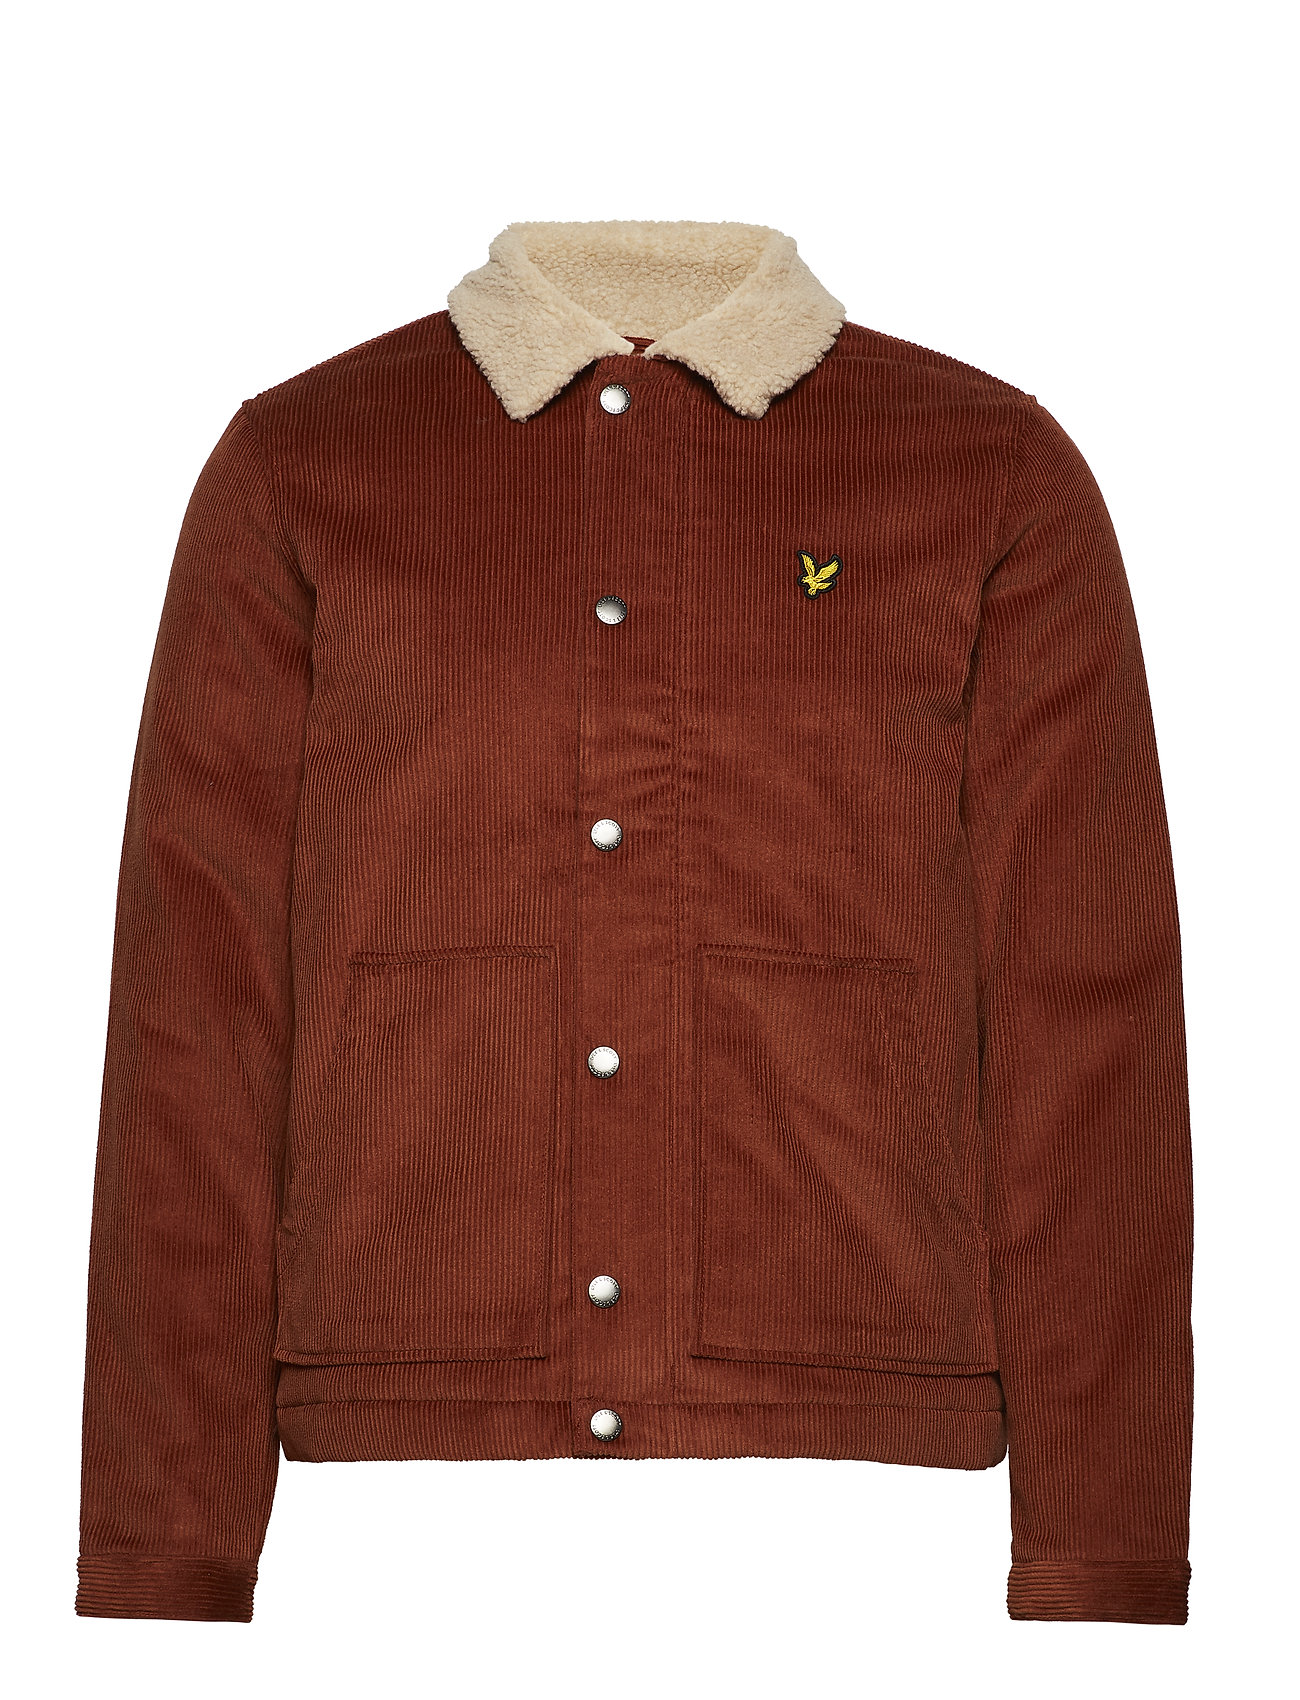 Lyle & Scott Jumbo Cord Shearling Jacket - BROWN SPICE